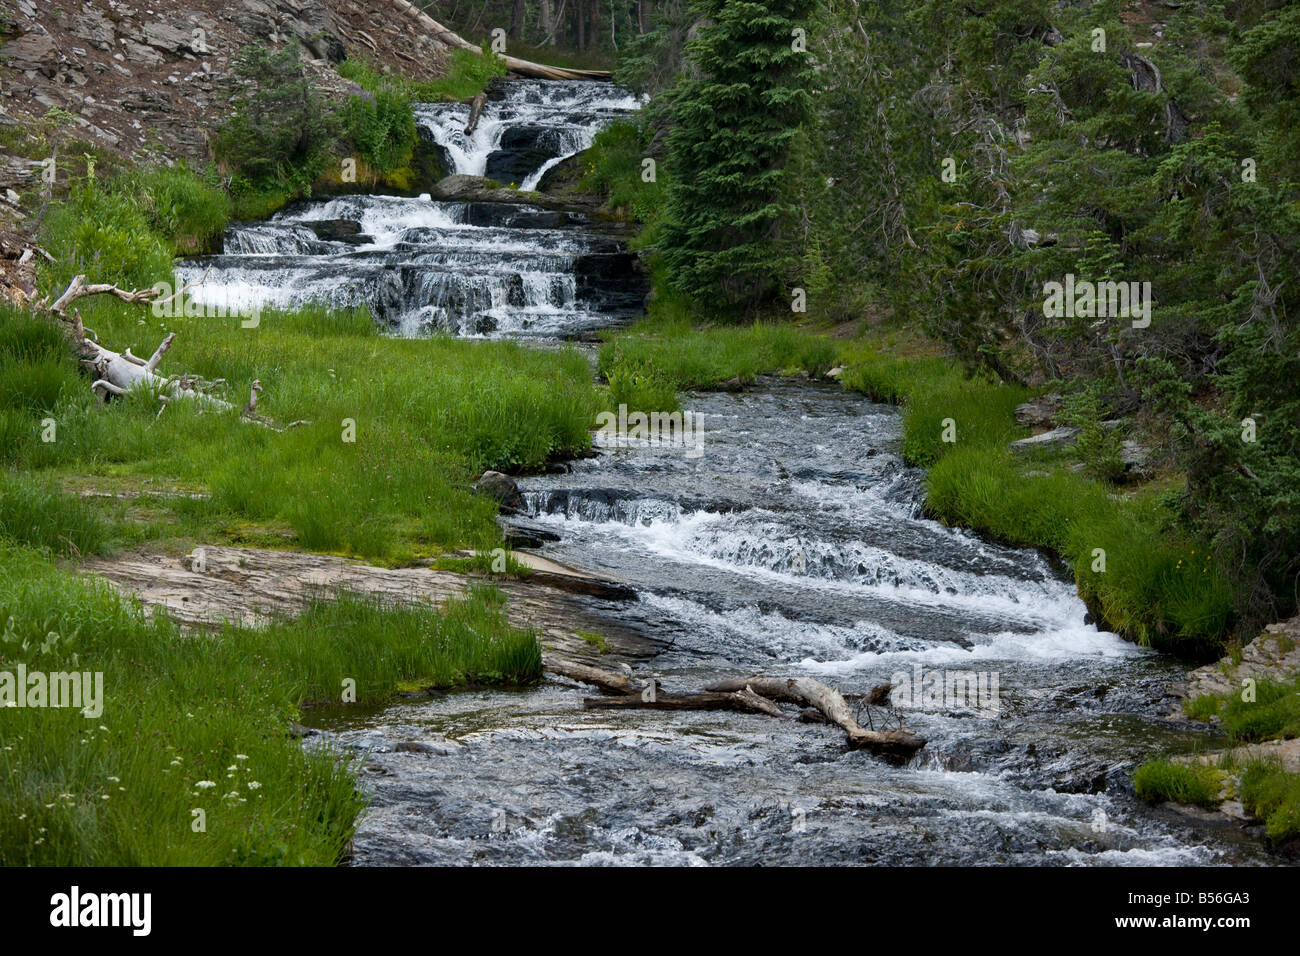 Series of cascades on small river in Mount Lassen National Park California - Stock Image